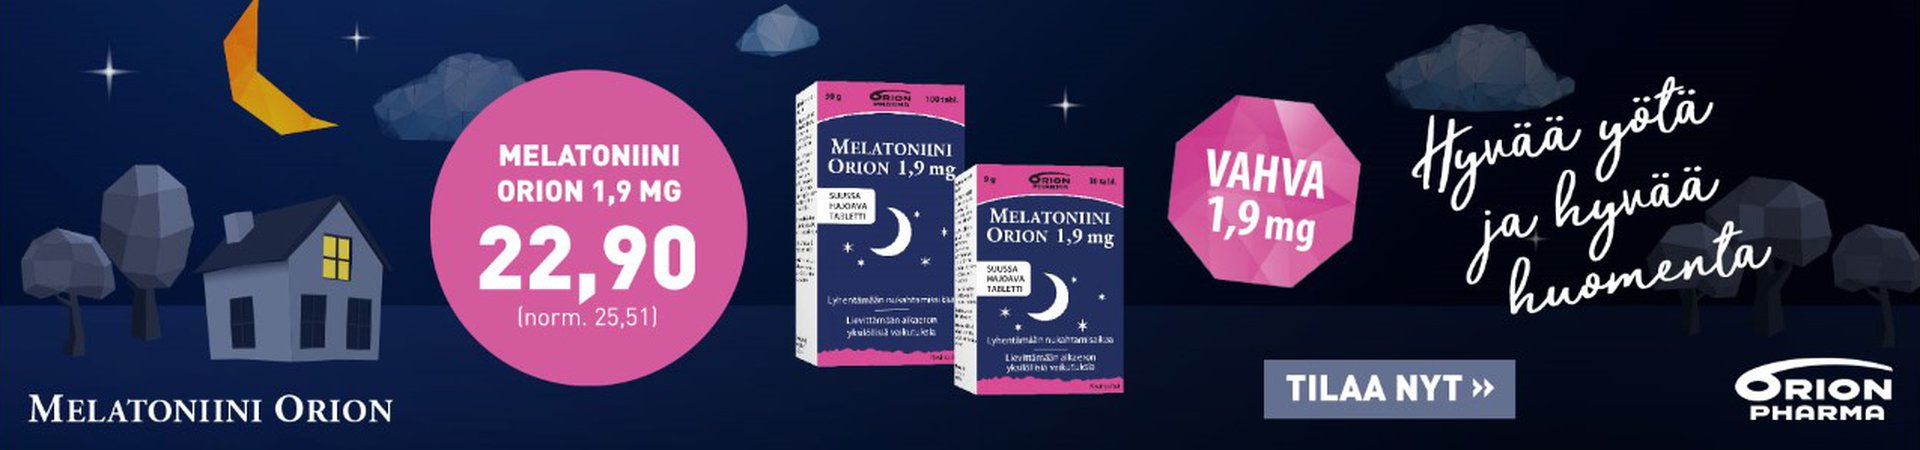 Melatoniini Orion 1,9 mg elokuu